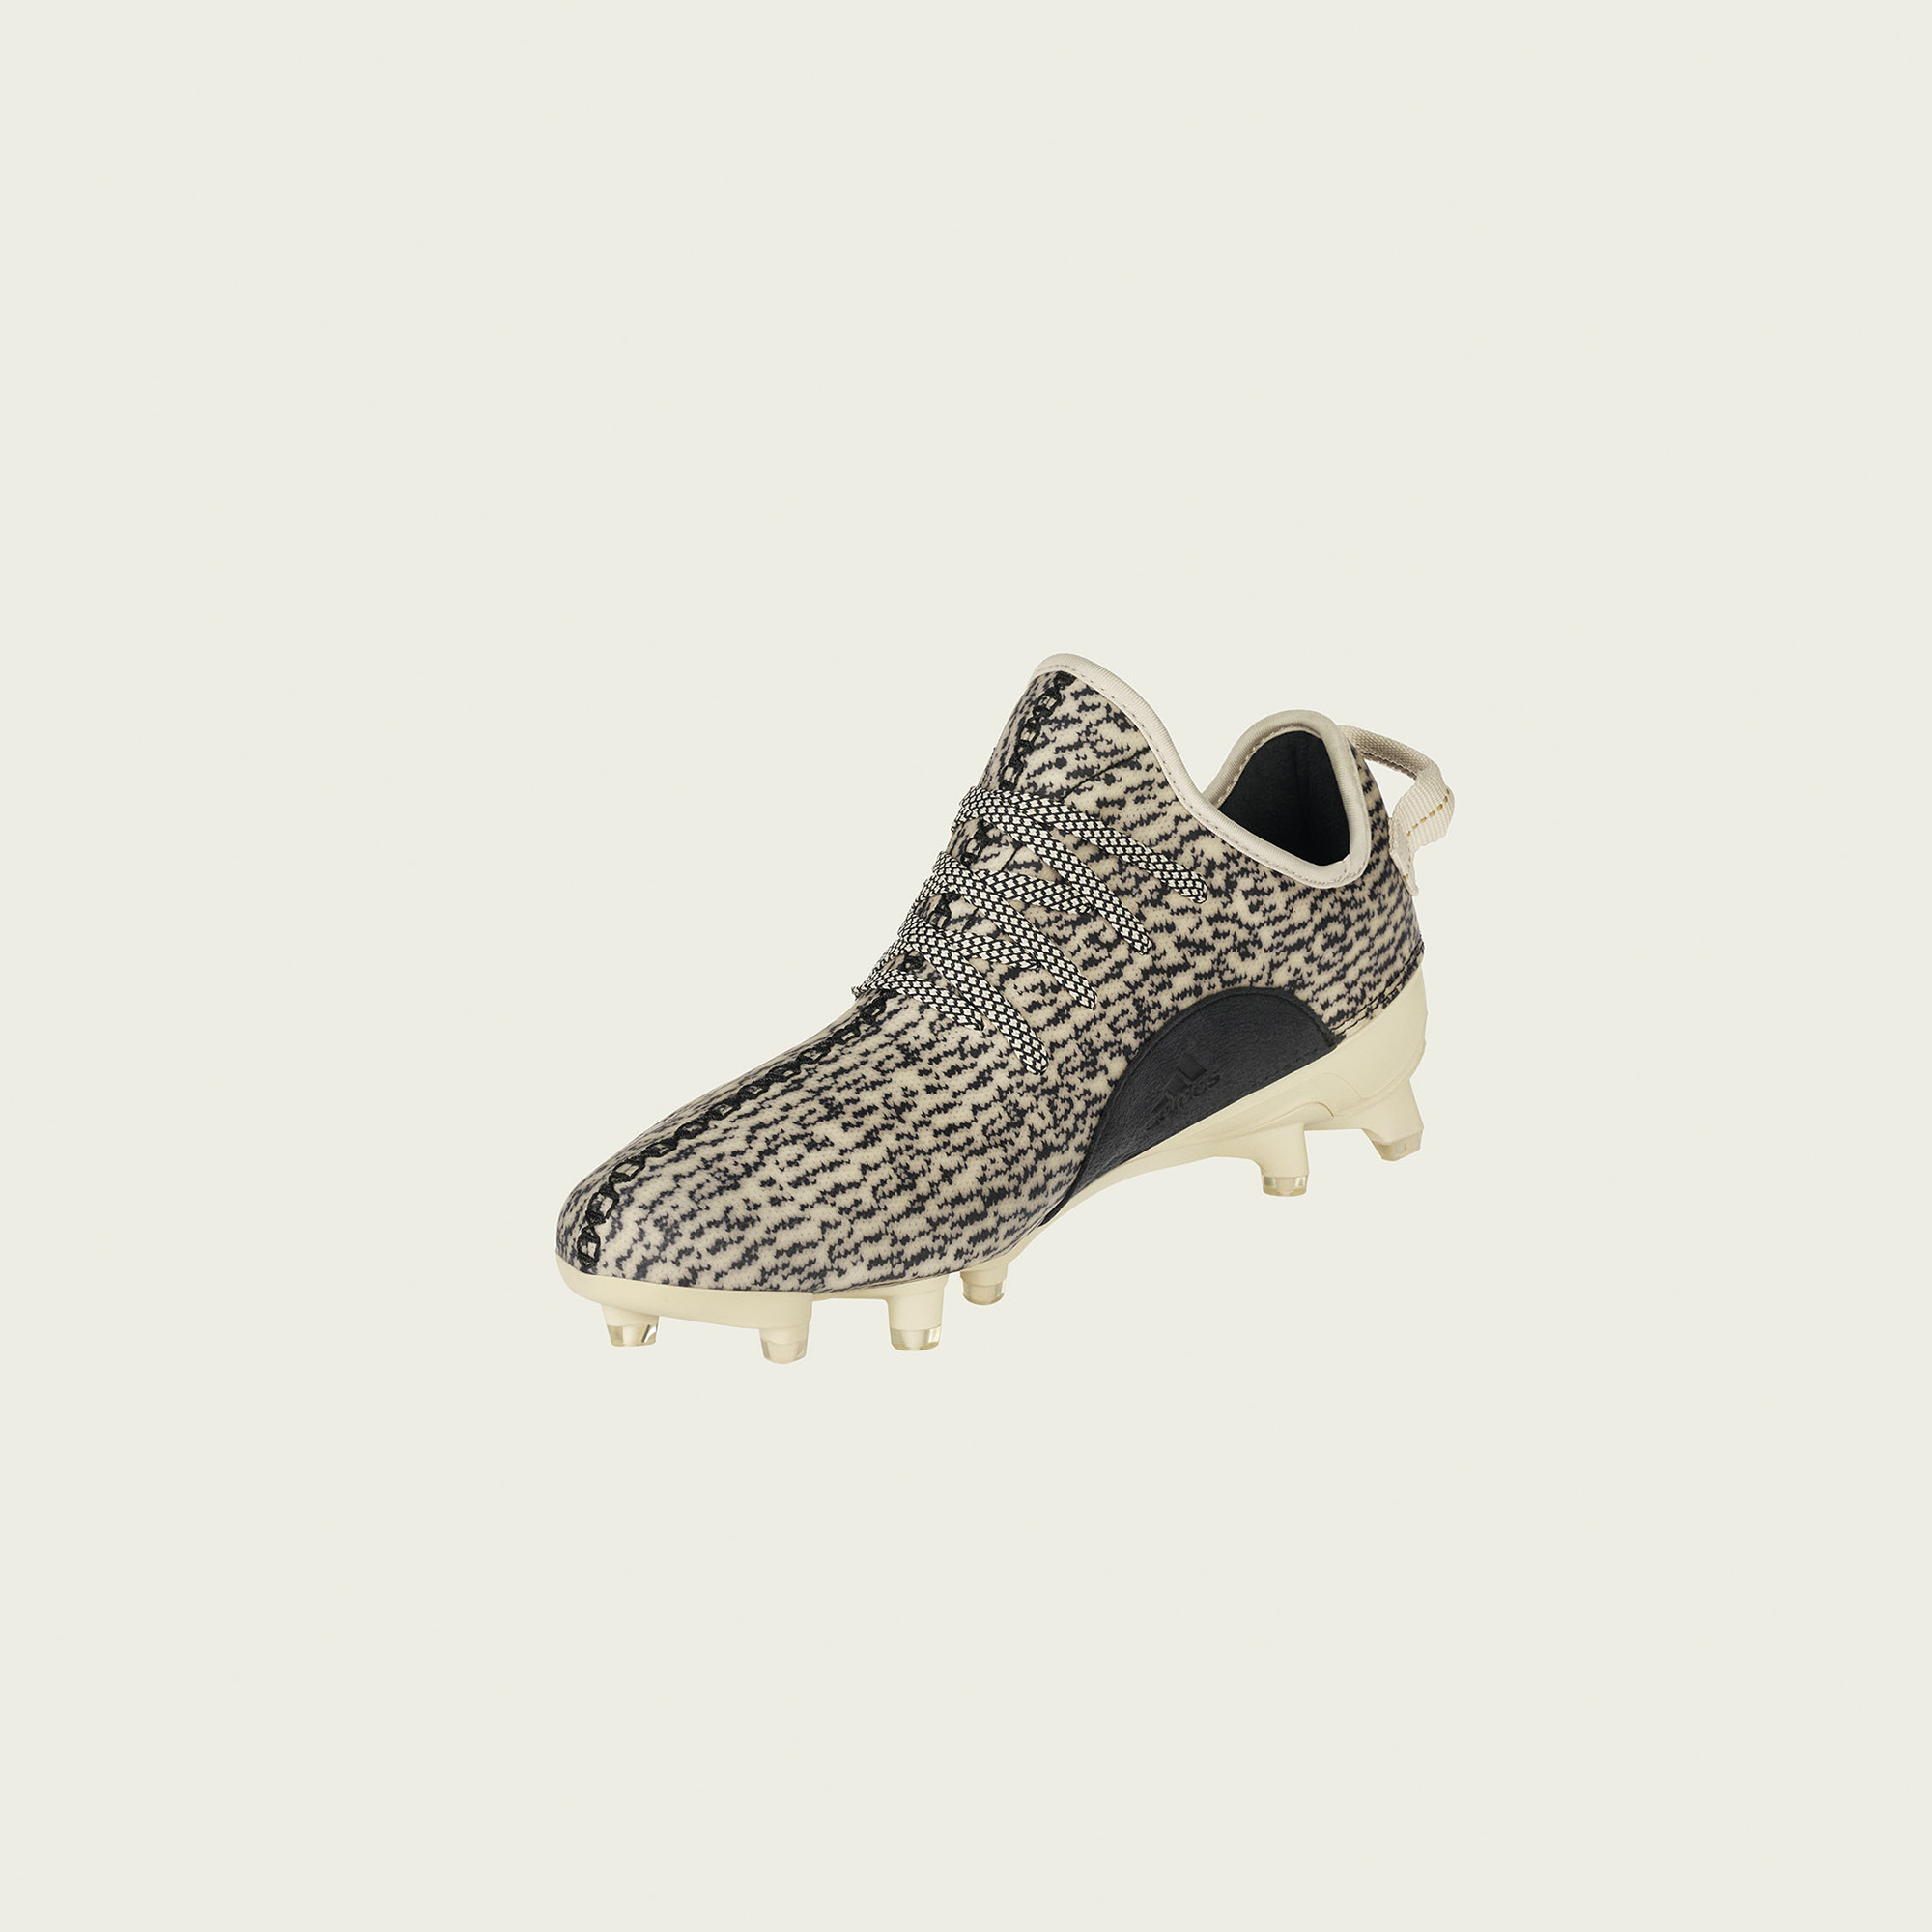 Yeezy 350 Boost Football Cleat